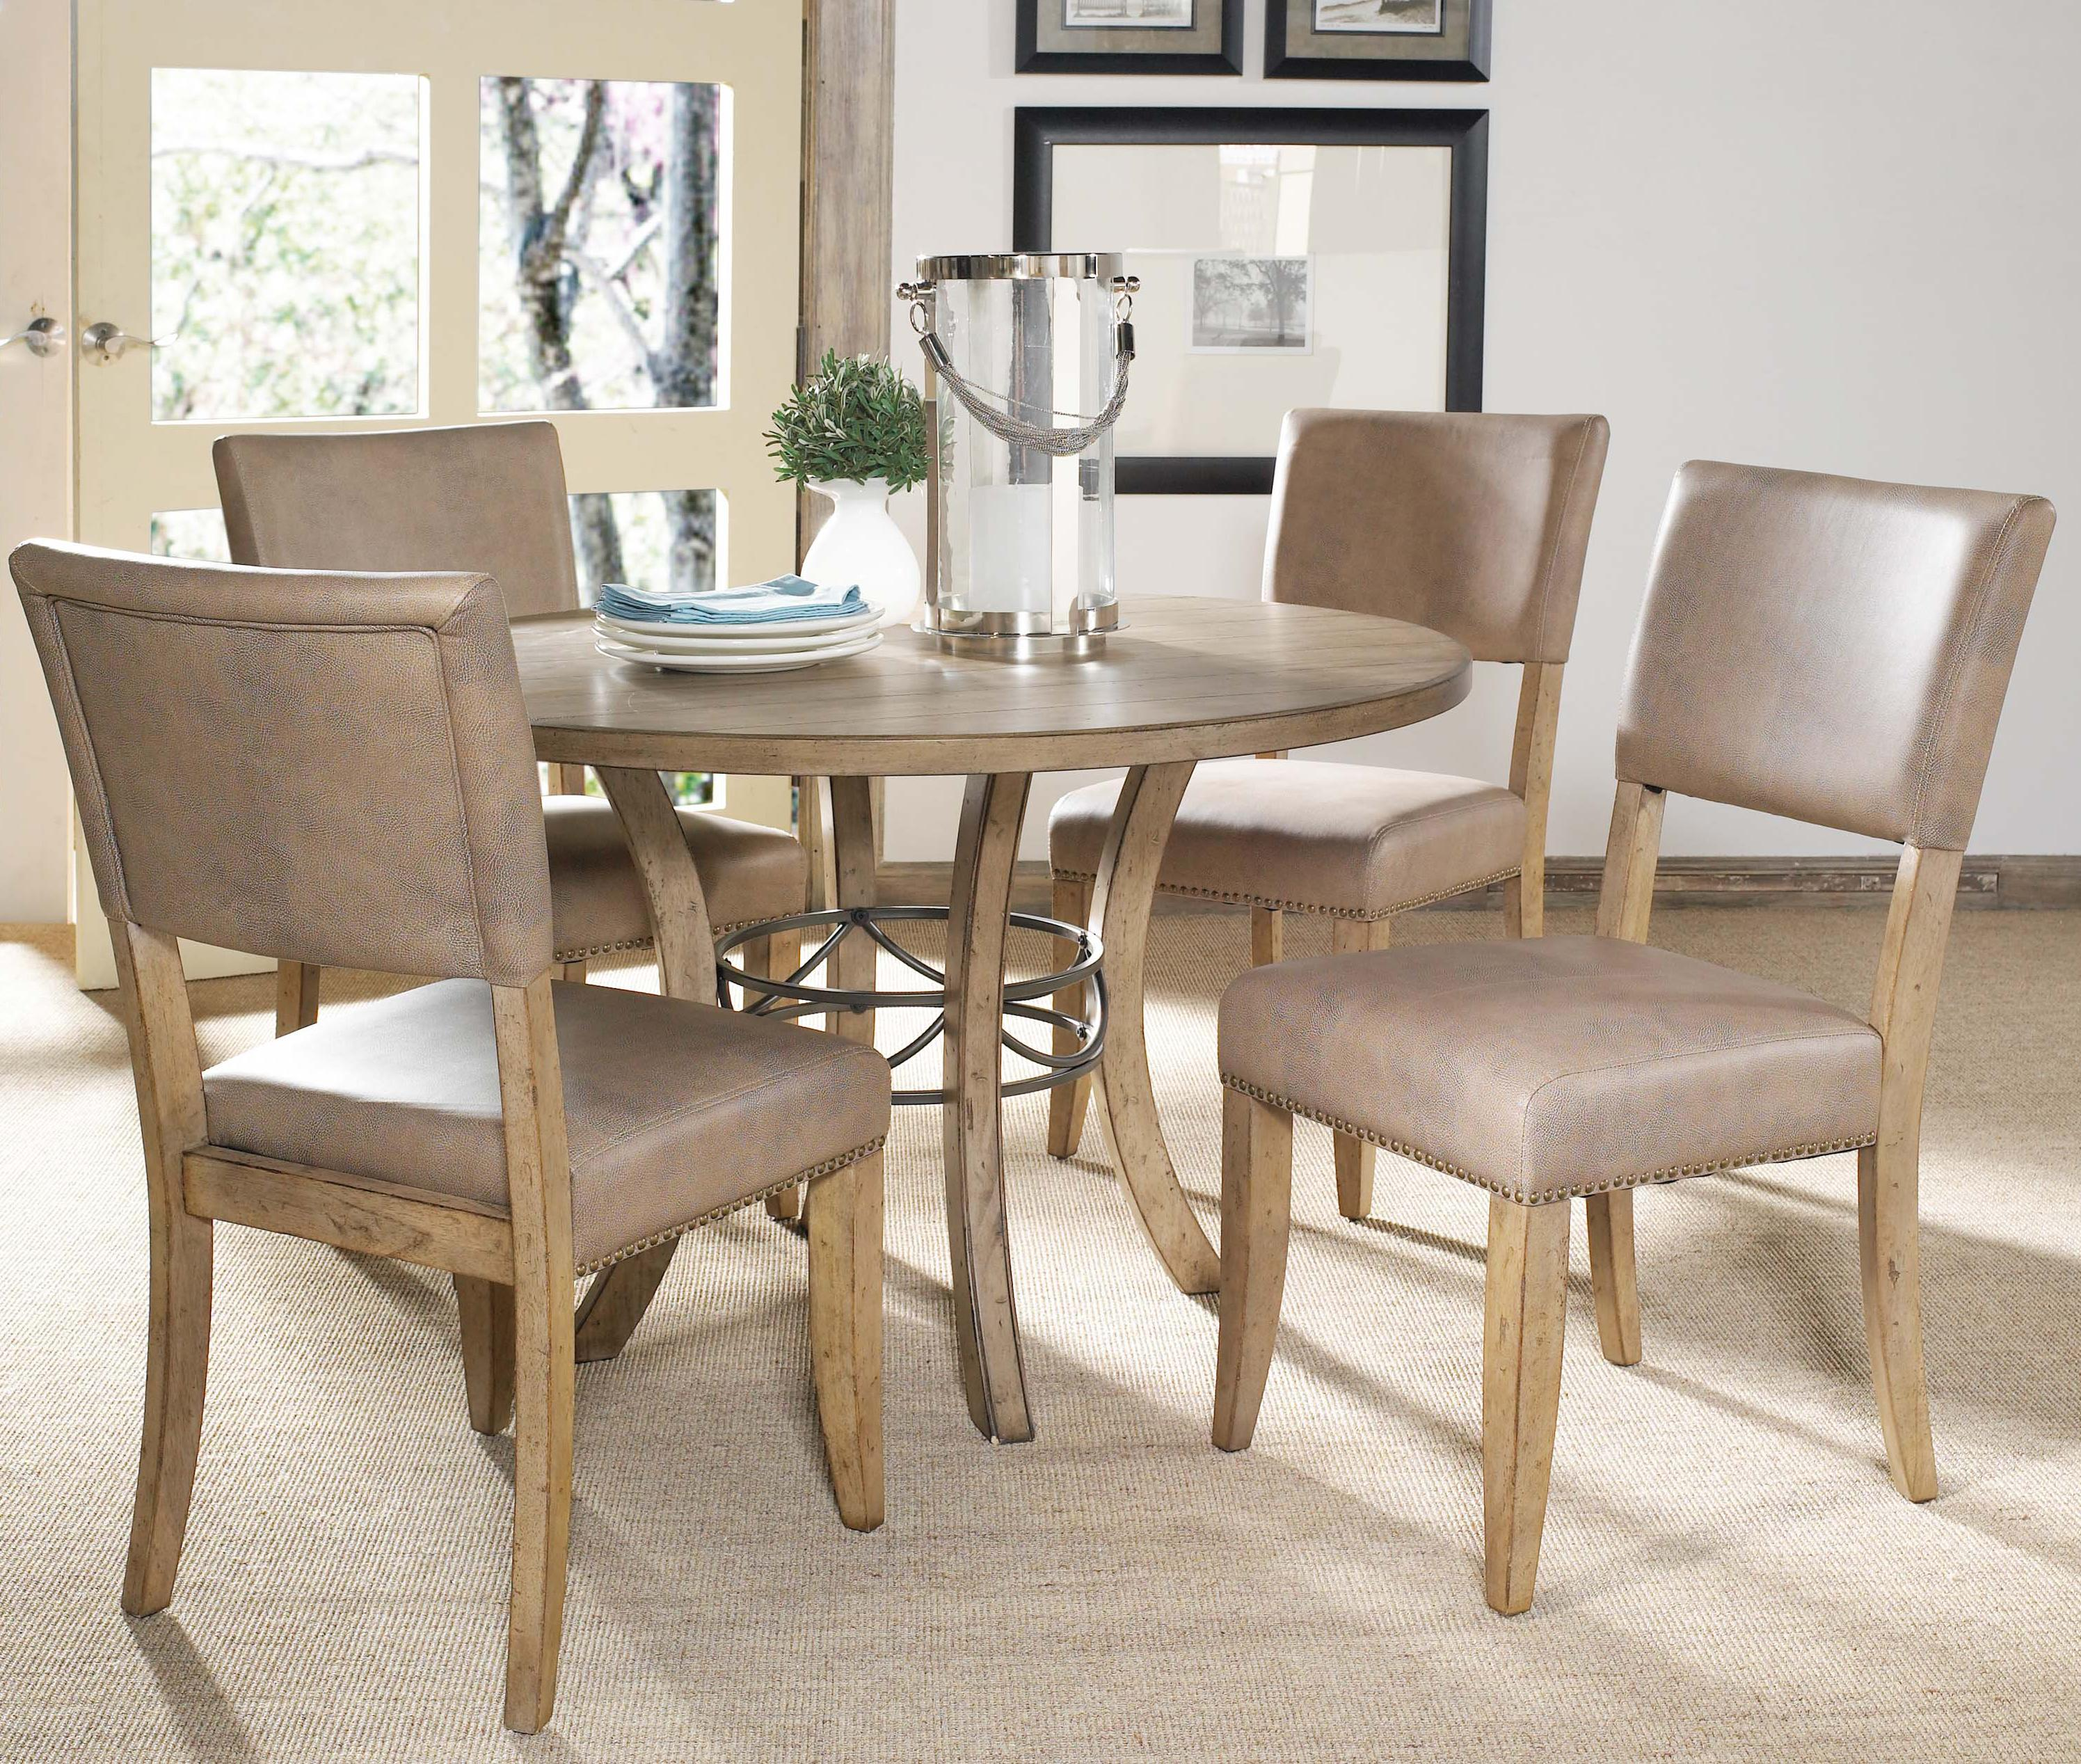 parsons dining side chair productsfhillsdalefcolorfcharleston   b parsons dining side chair: dining table parson chairs interior